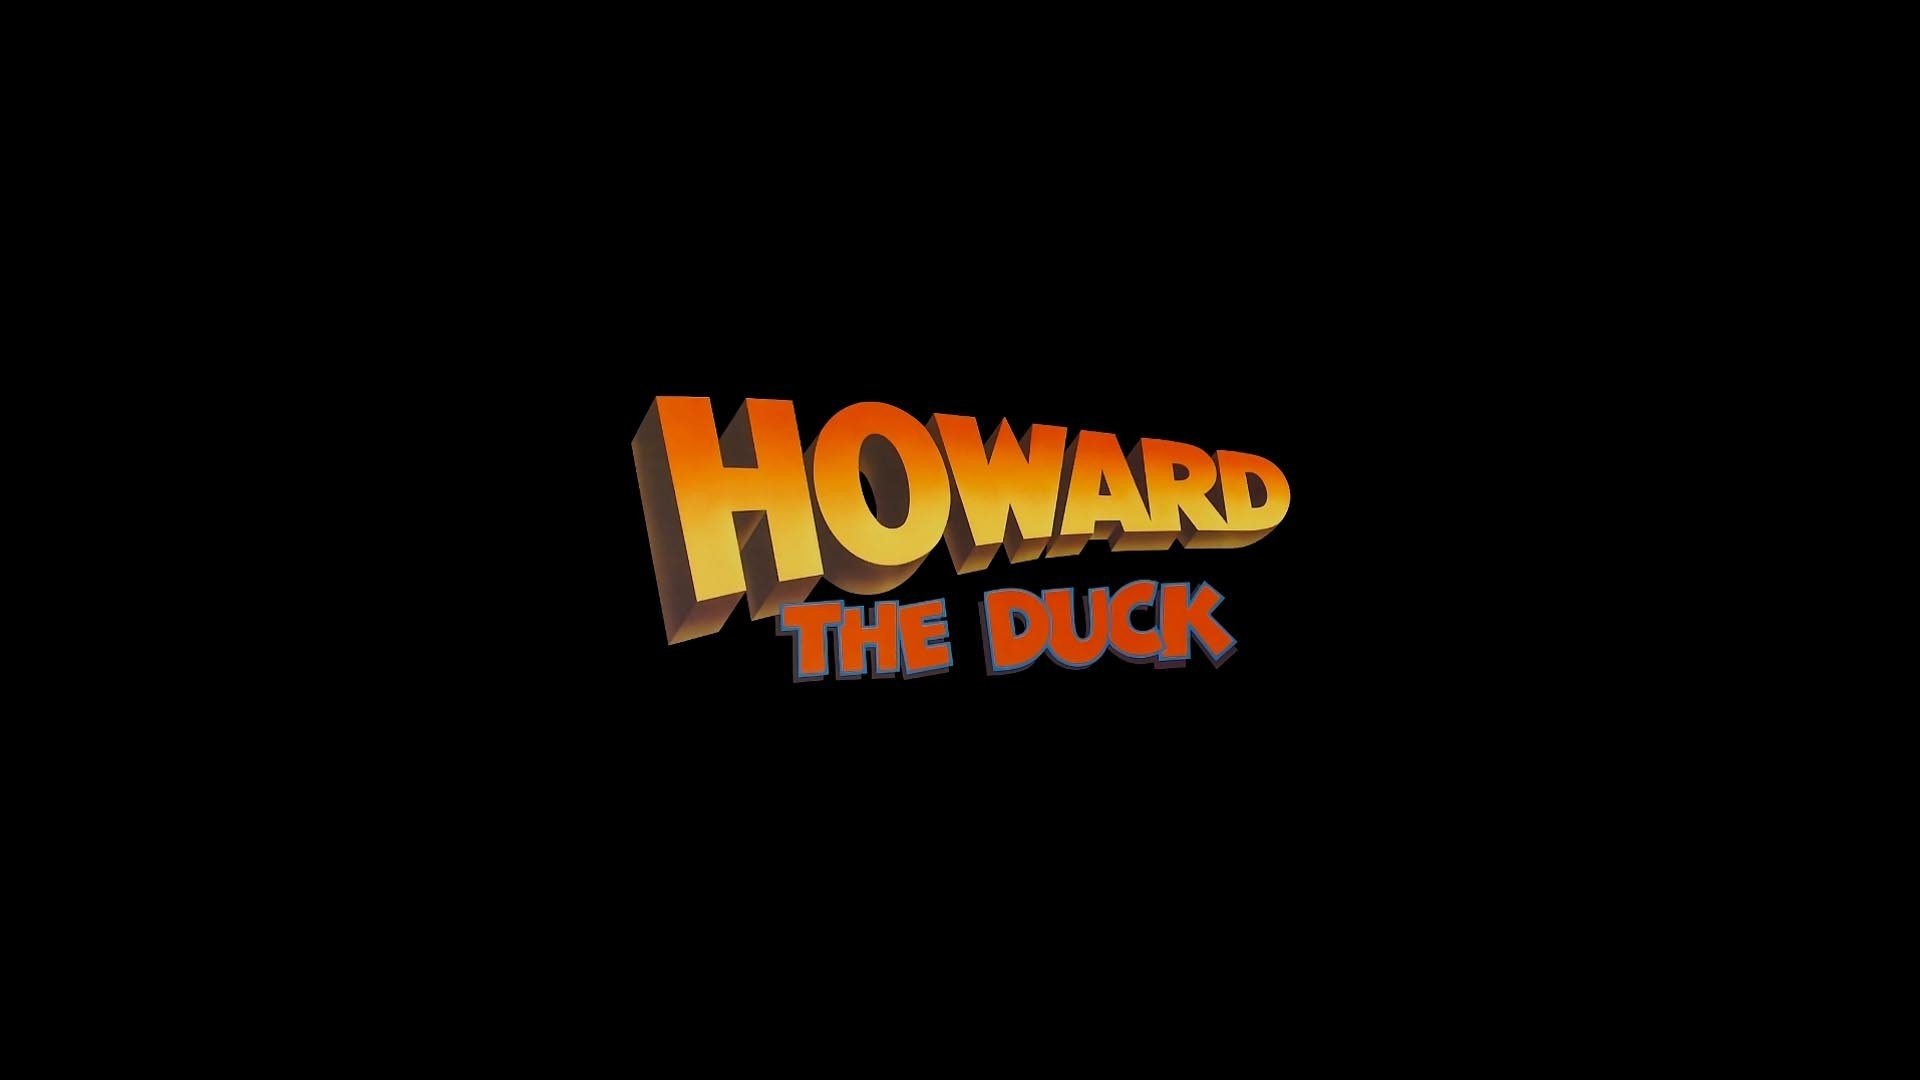 6 Howard The Duck HD Wallpapers Background Images 1920x1080